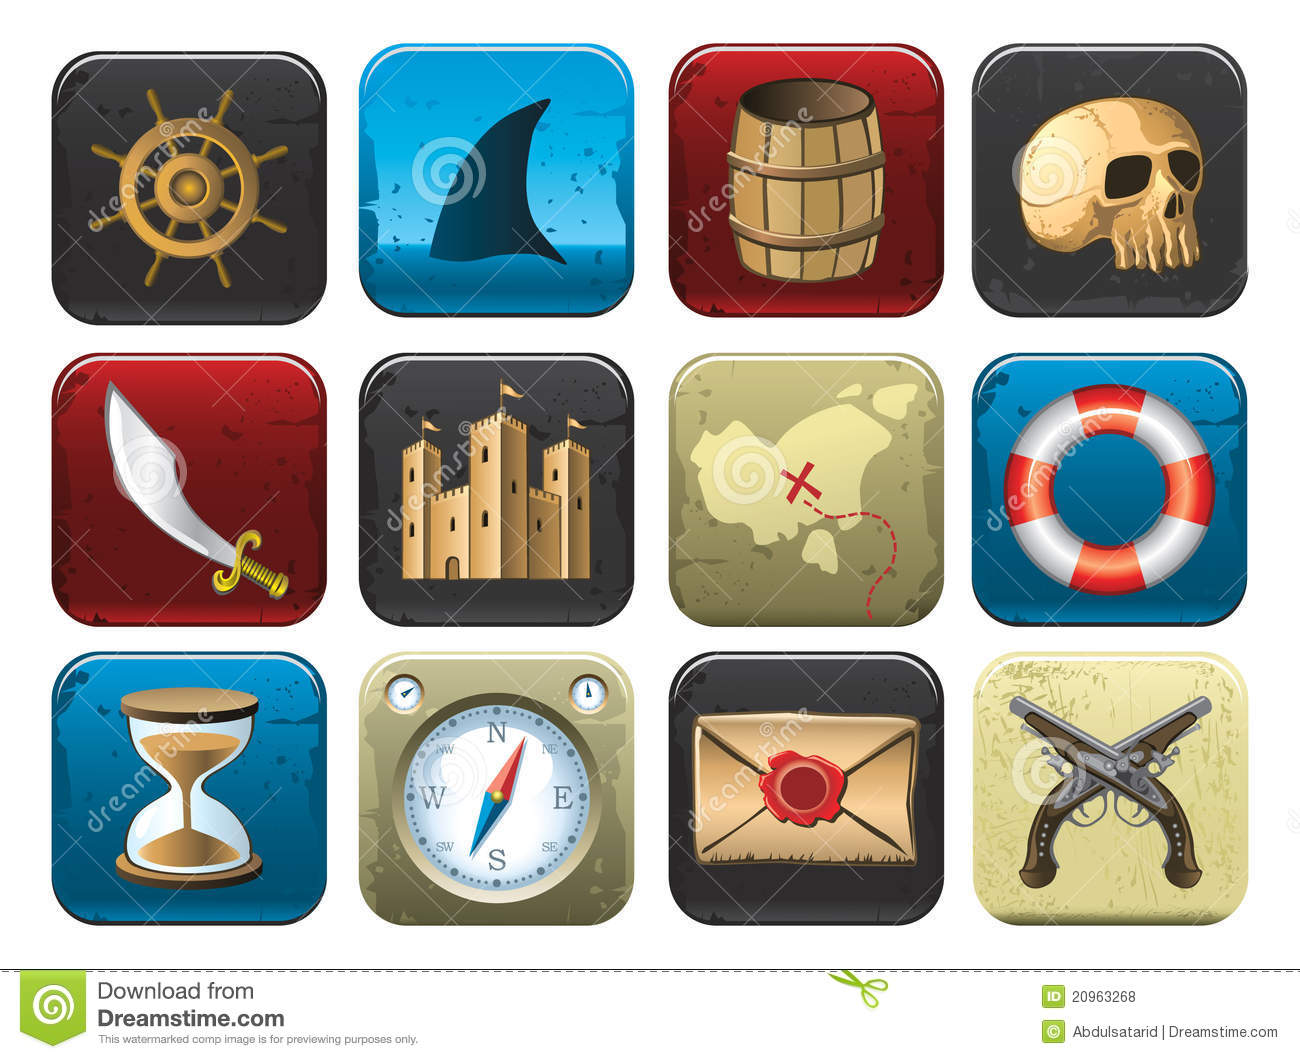 Pirate Map Symbols http://www.dreamstime.com/royalty-free-stock-photos-collection-pirate-symbols-image20963268